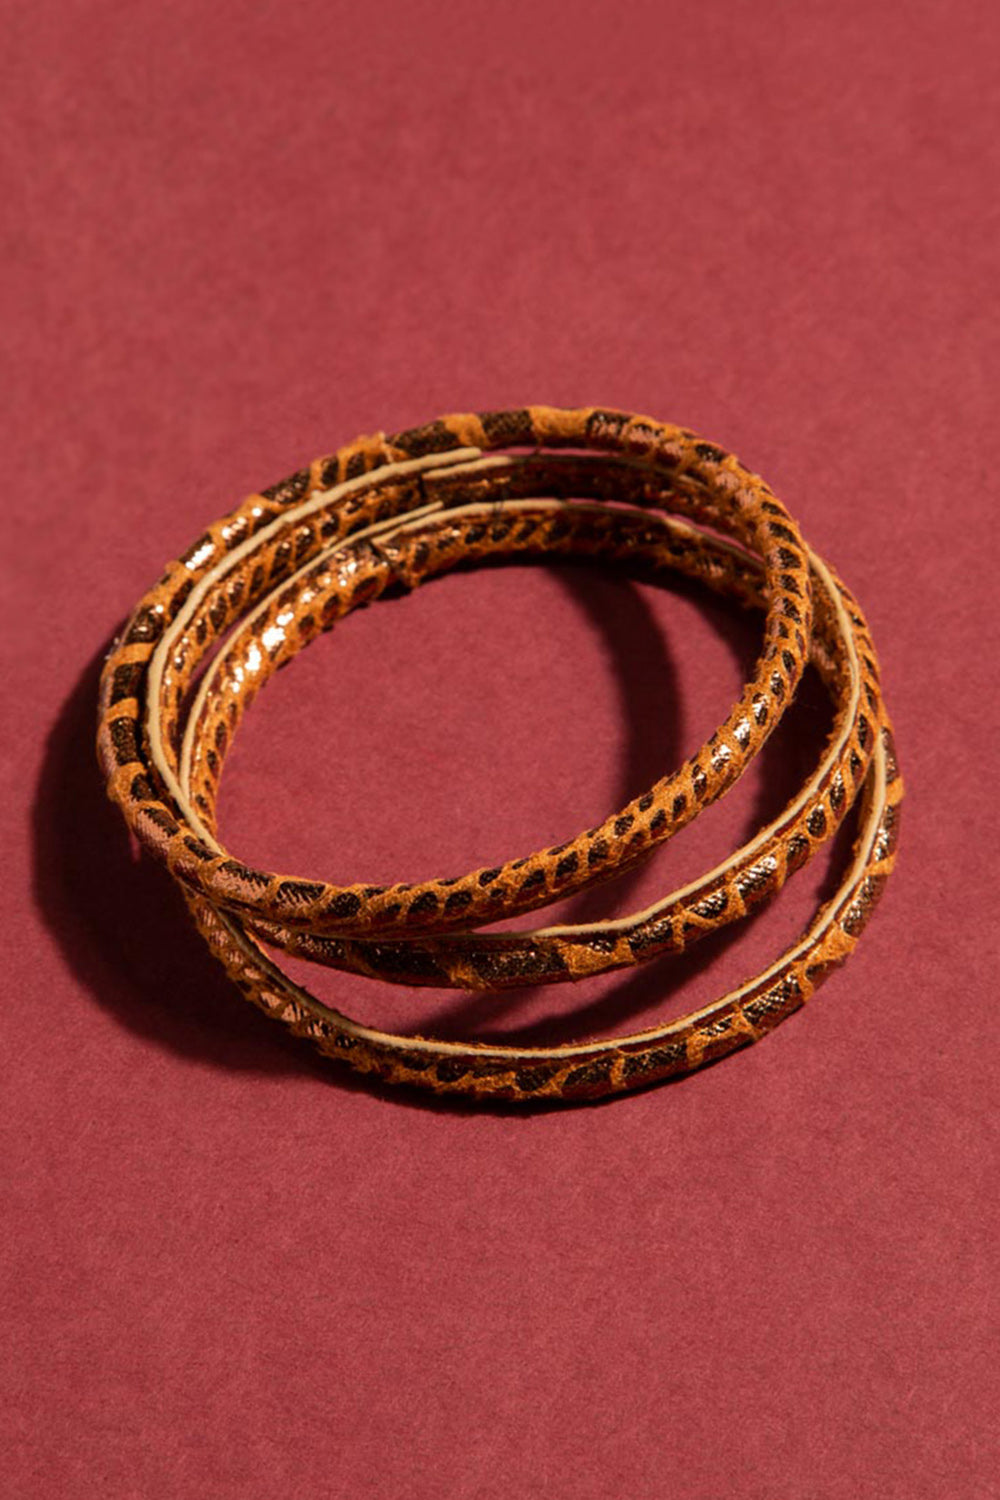 Type 3 River Cruise Bangles